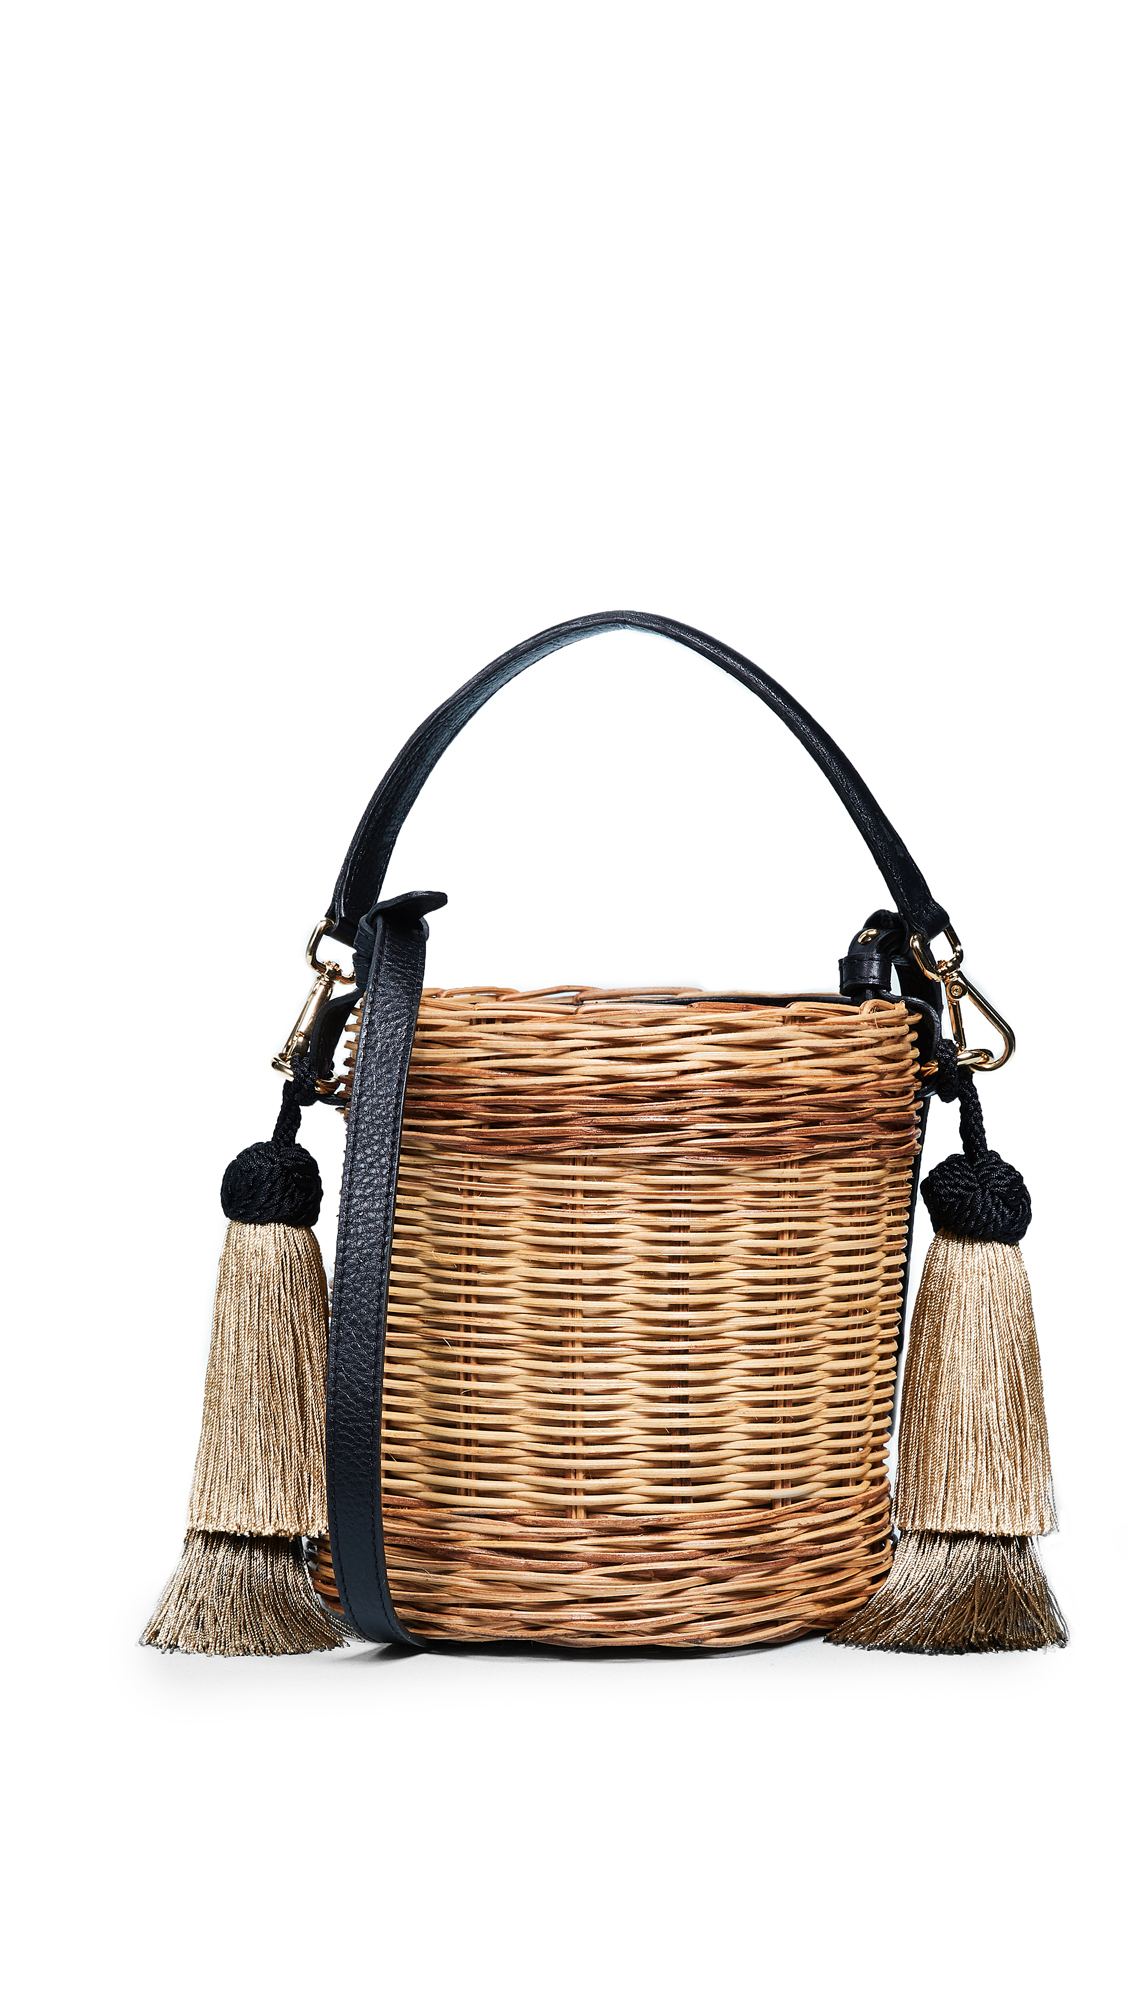 woven-bags-and-accessories-2018-bucket4